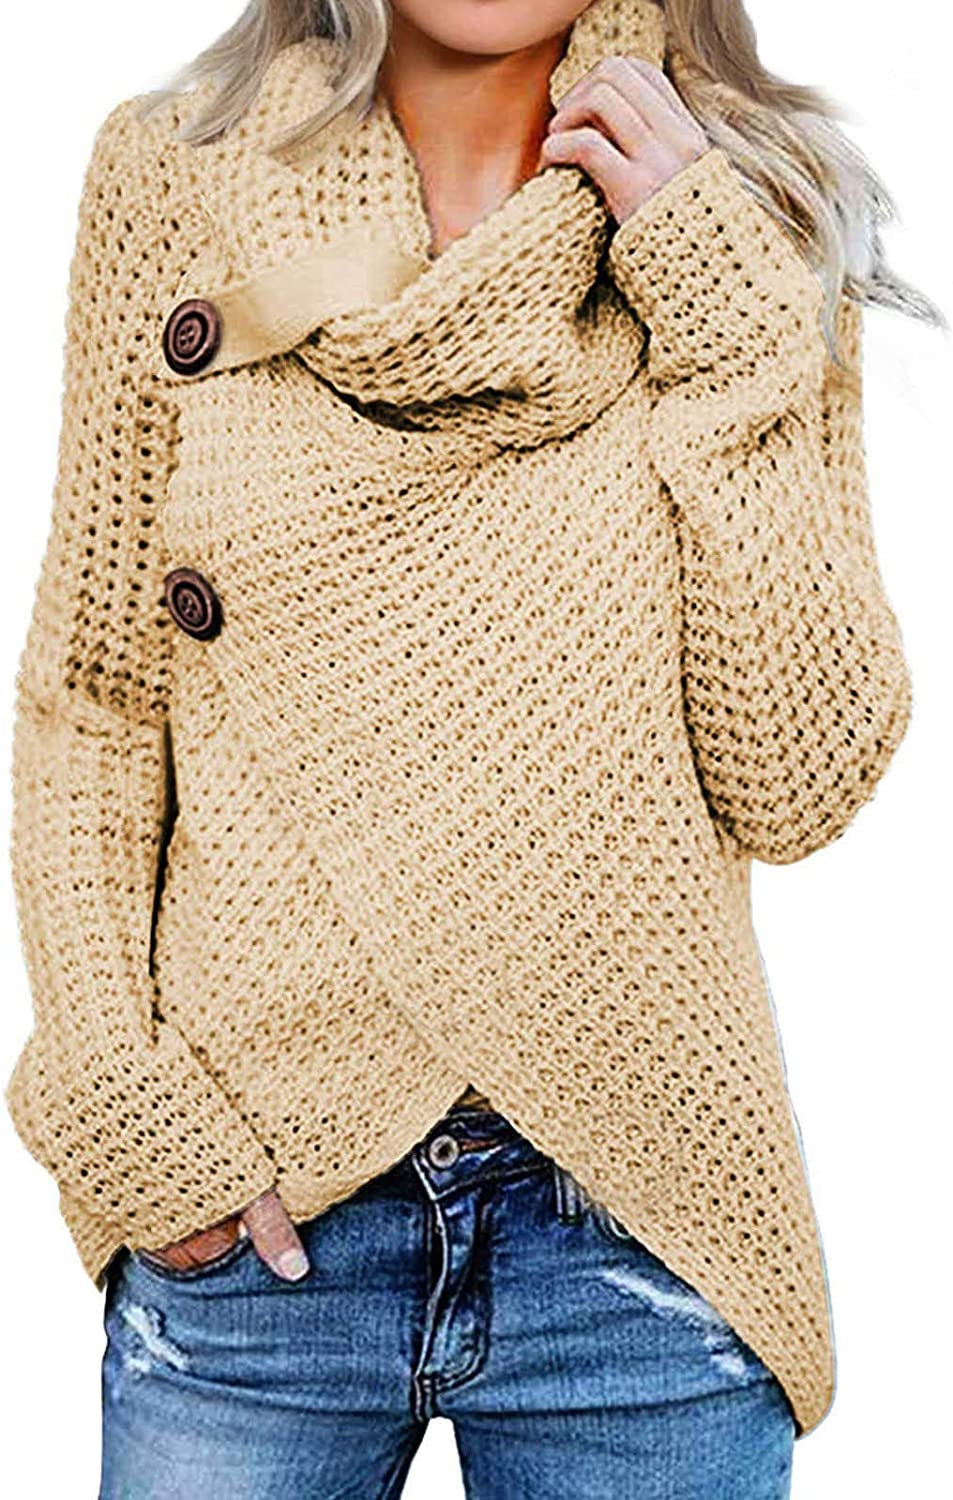 FABIURT Sweaters for Women, Womens Fashion Turtleneck Long Sleeve Knit Sweater Casual Pullover Blouse Tops with Buttons